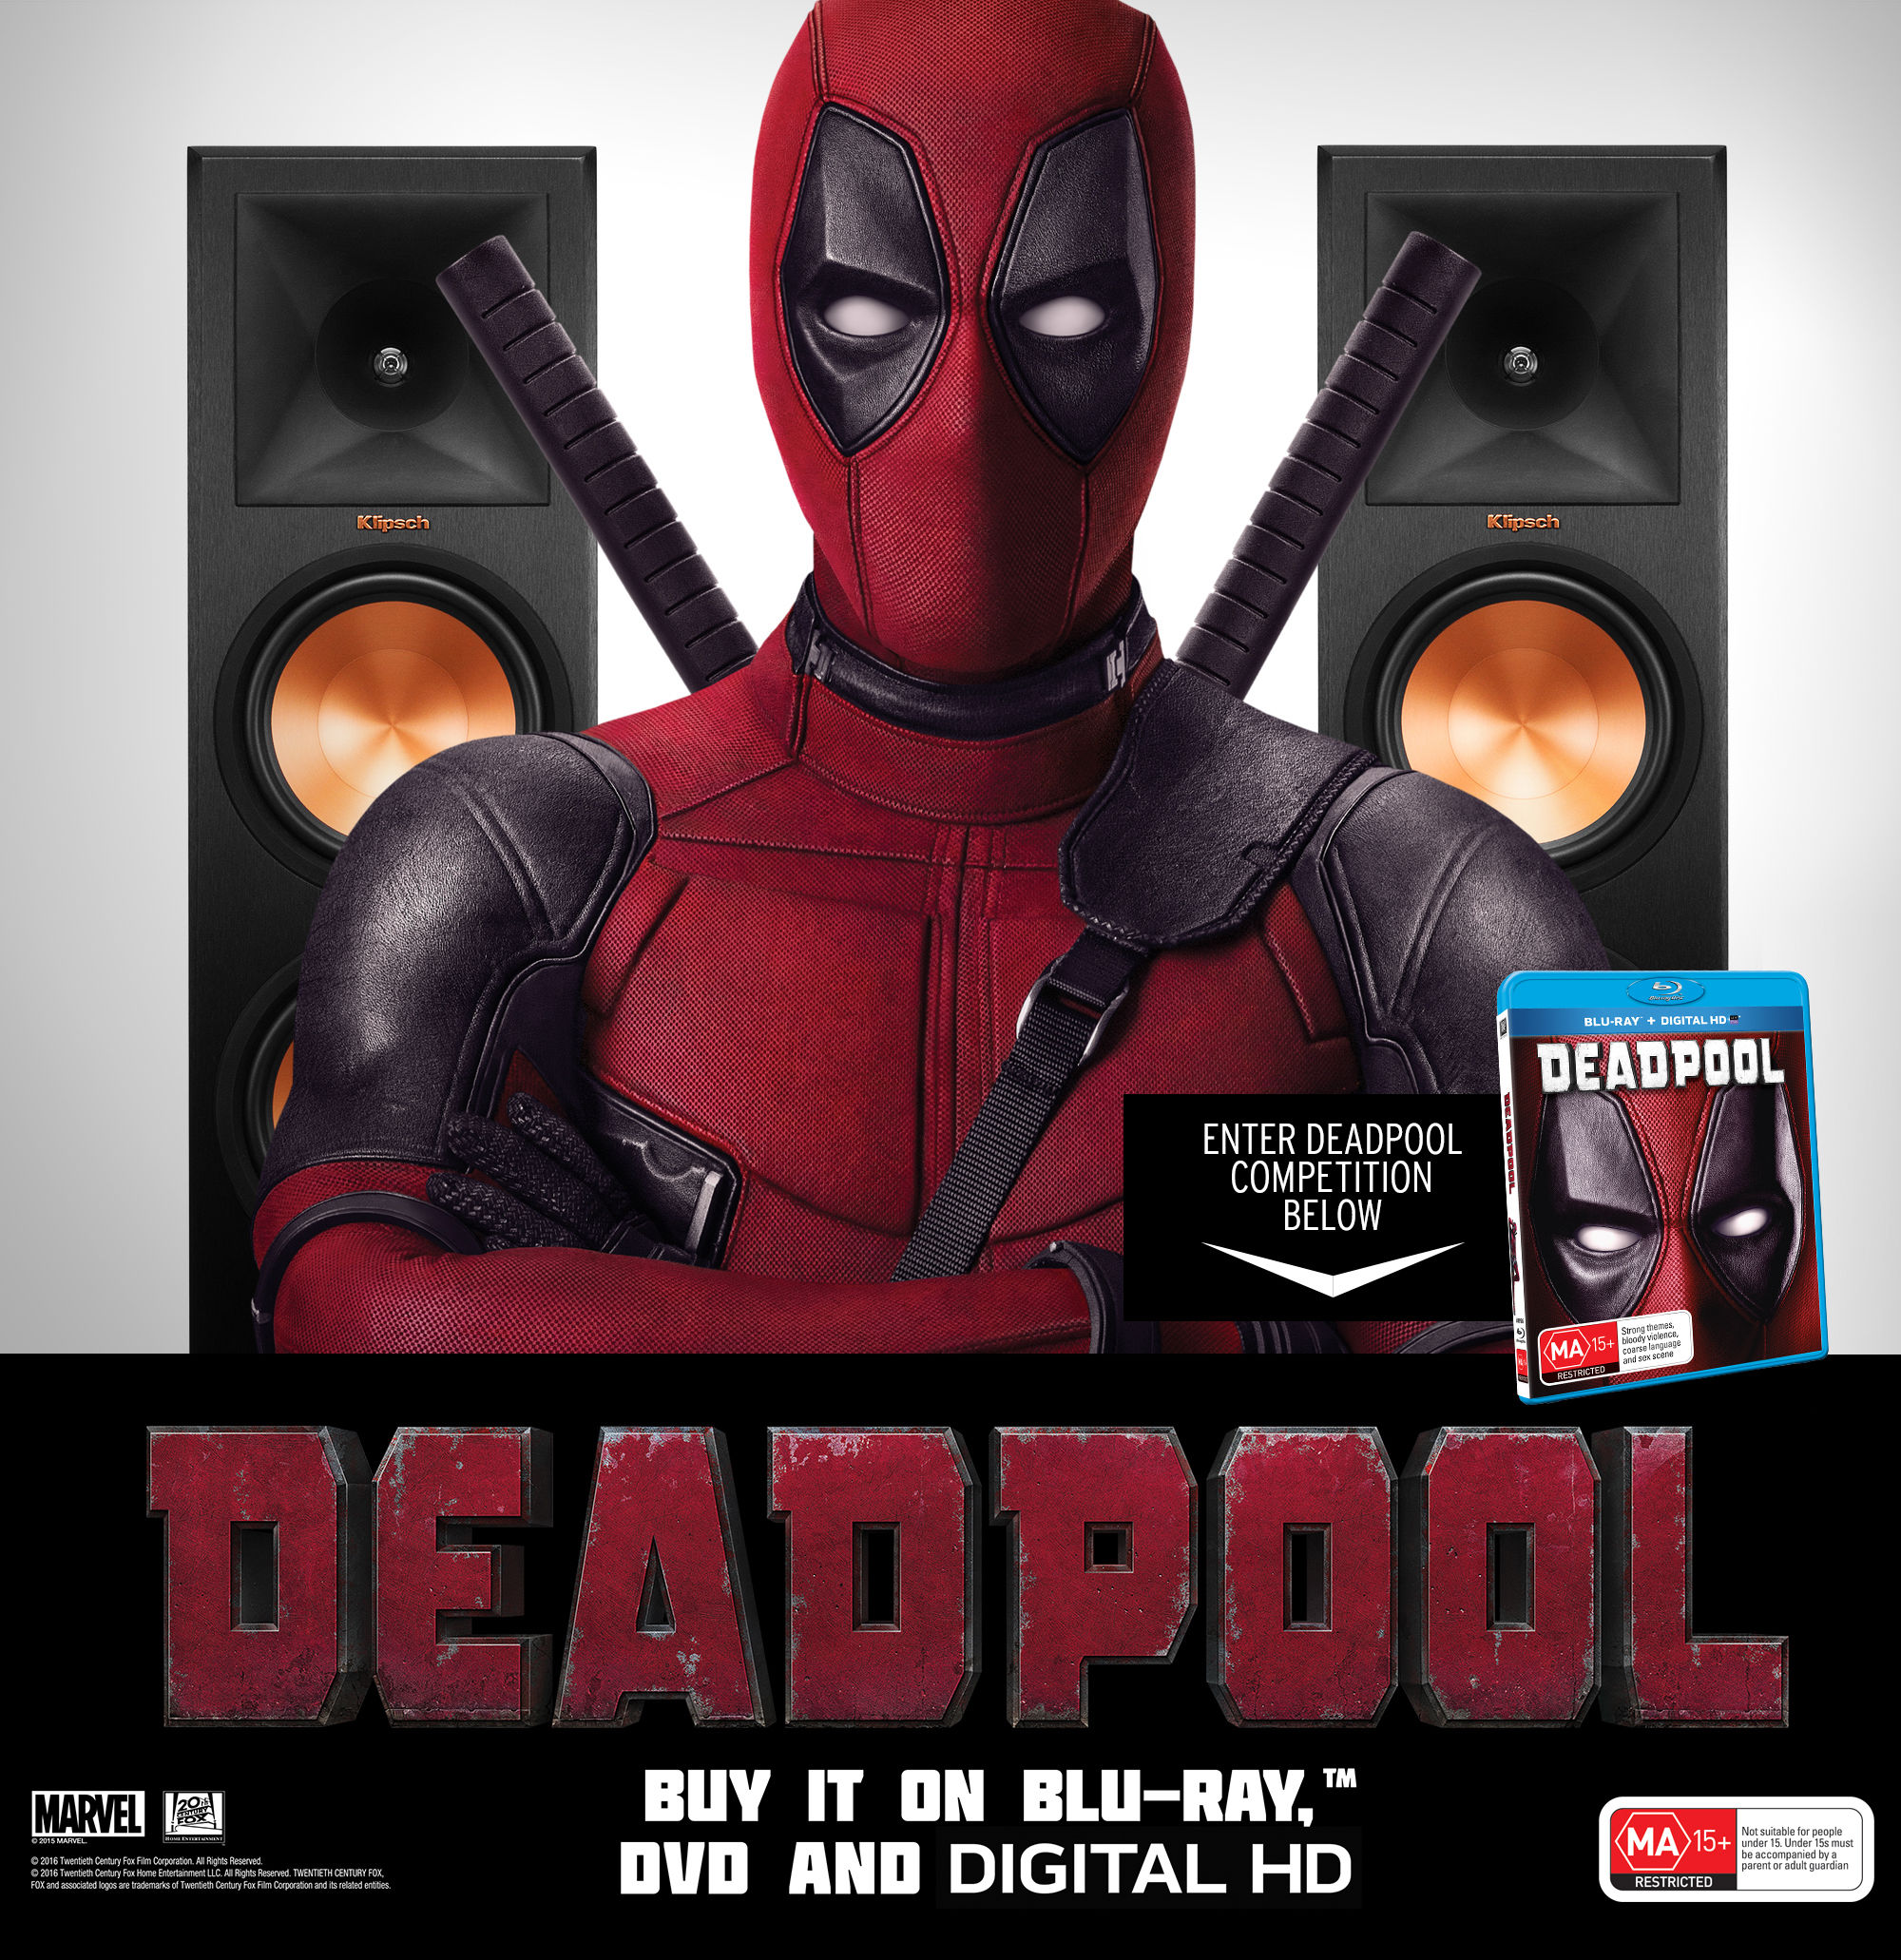 Deadpool Website Crap 4 Au